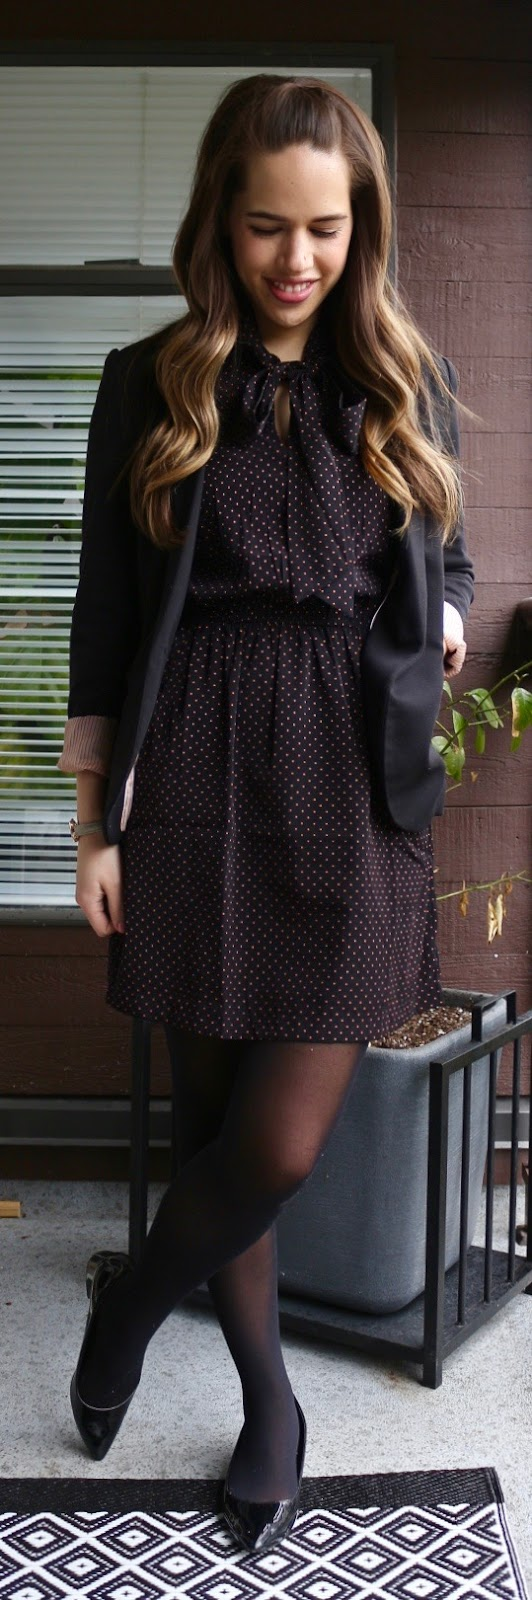 Jules in Flats - Tie Neck Polka Dot Dress + Blazer